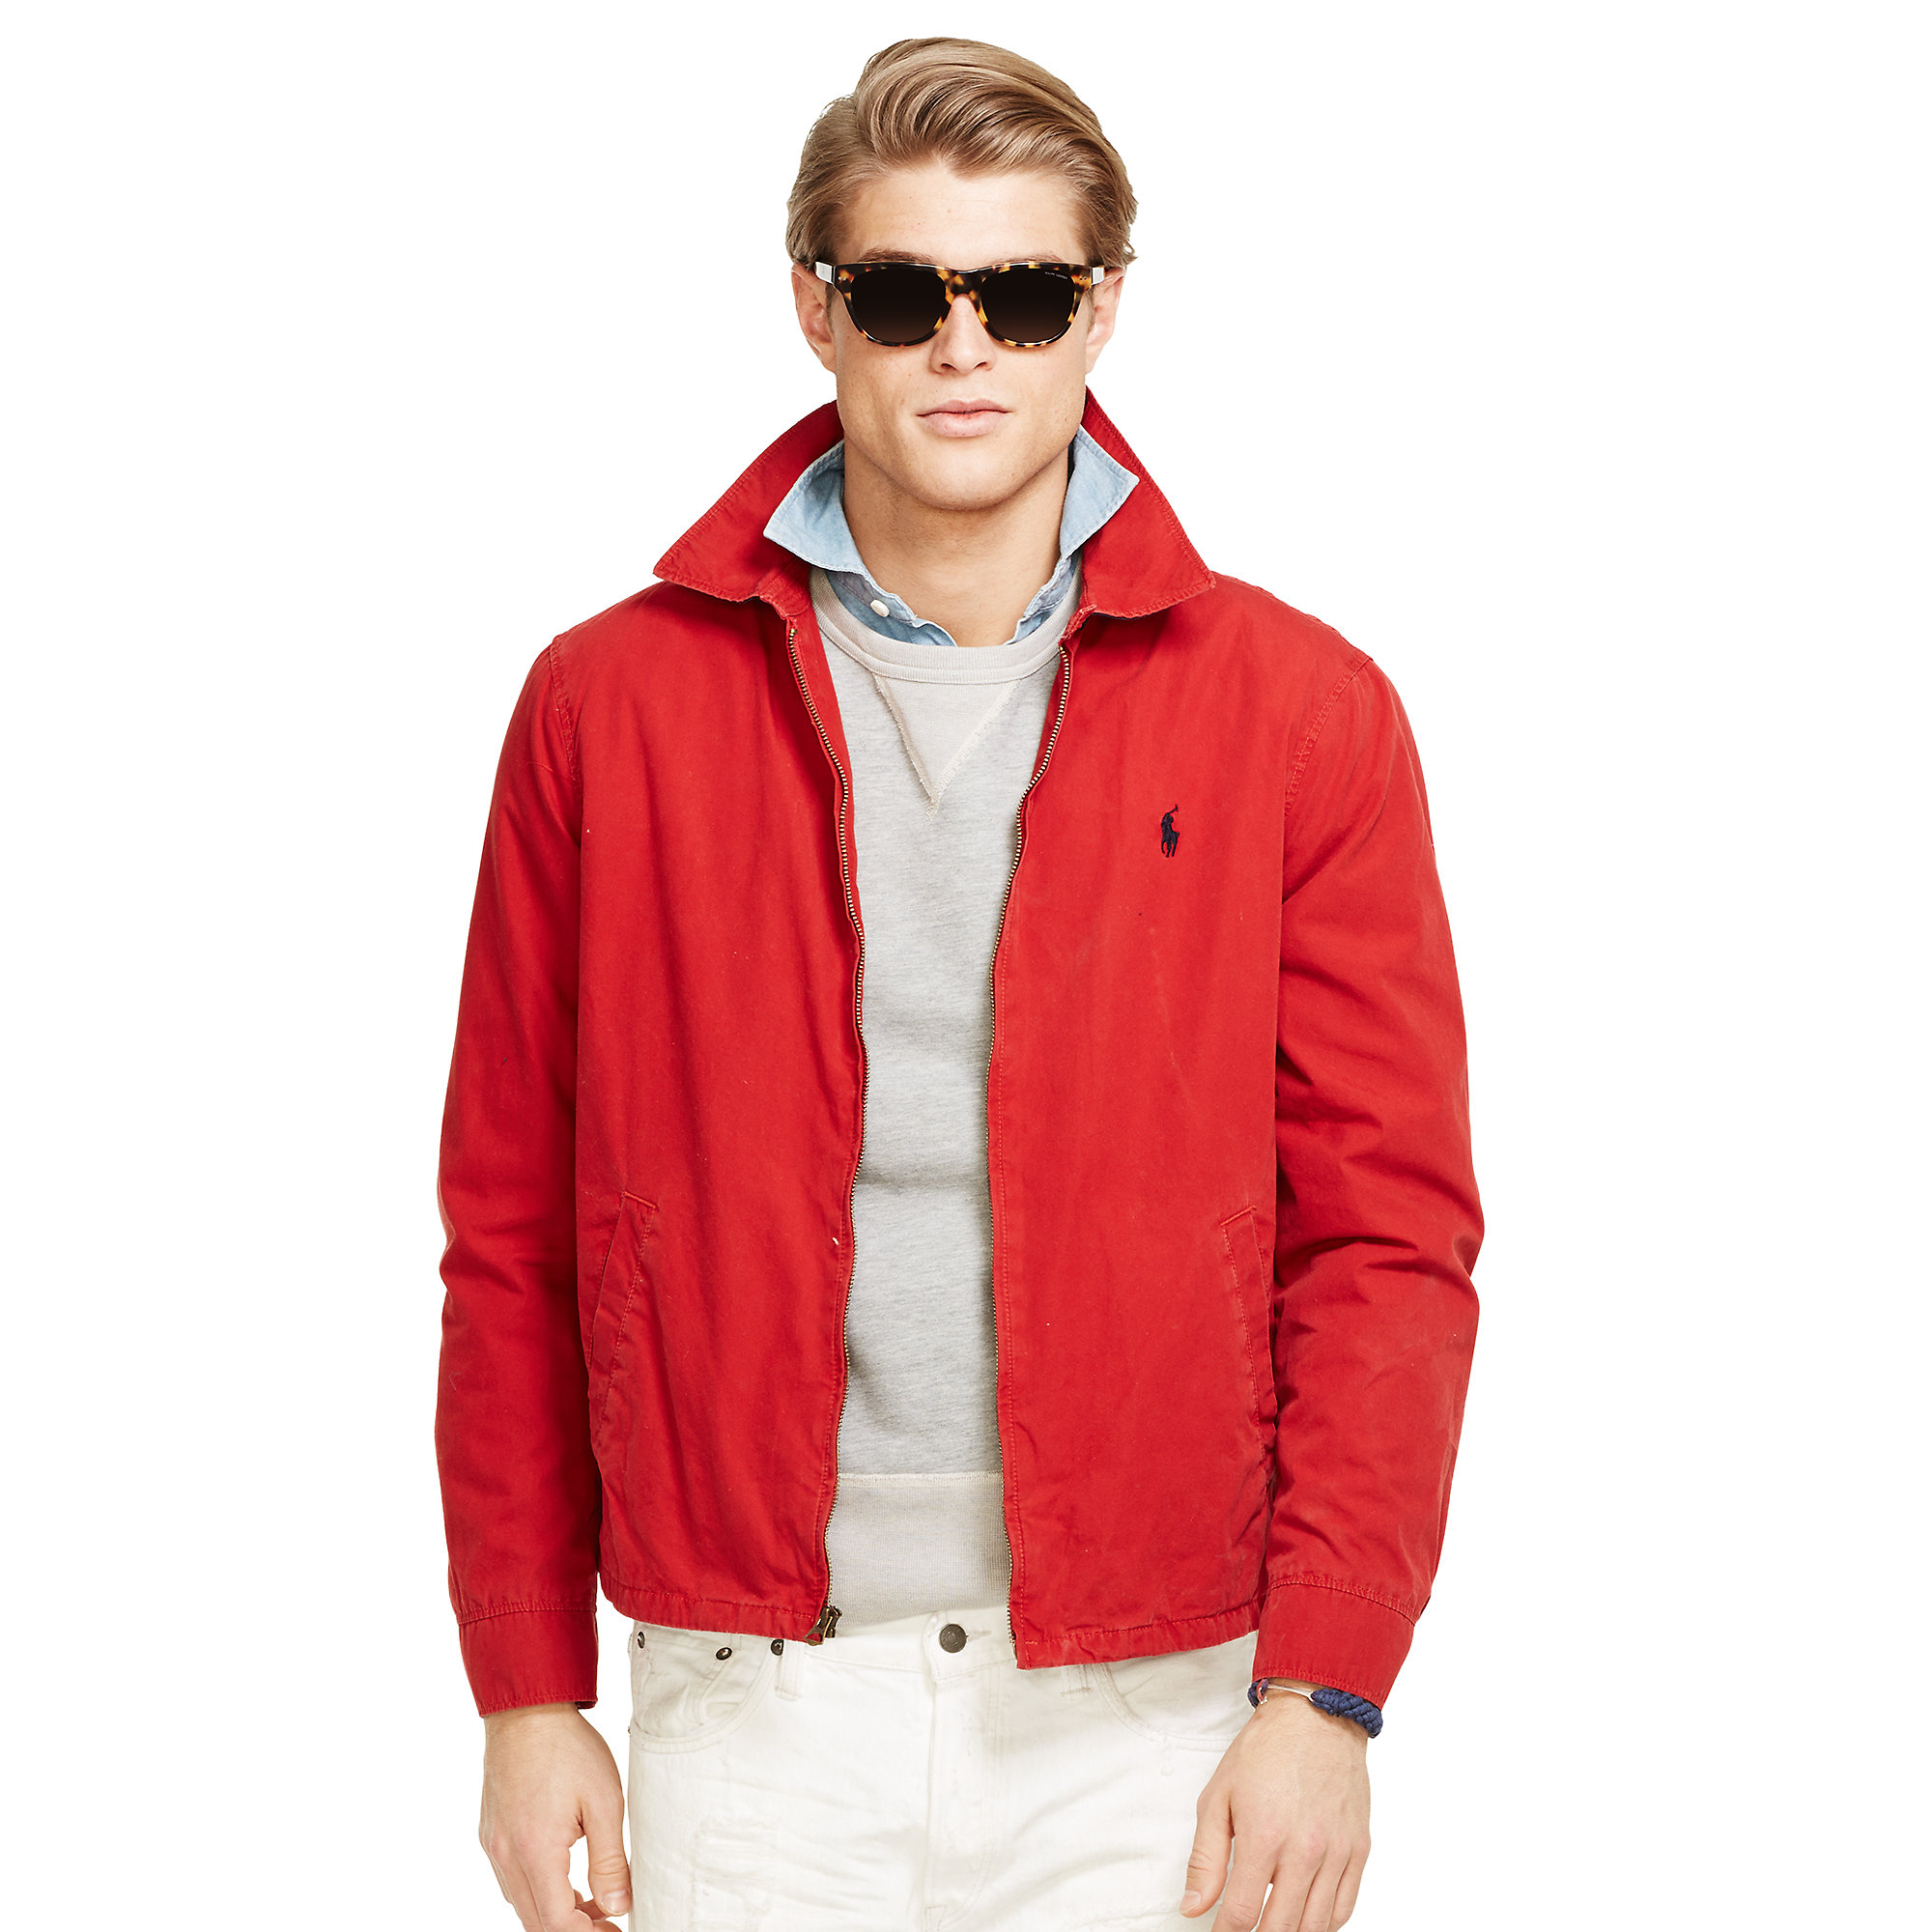 polo ralph lauren cotton landon windbreaker in red for men. Black Bedroom Furniture Sets. Home Design Ideas